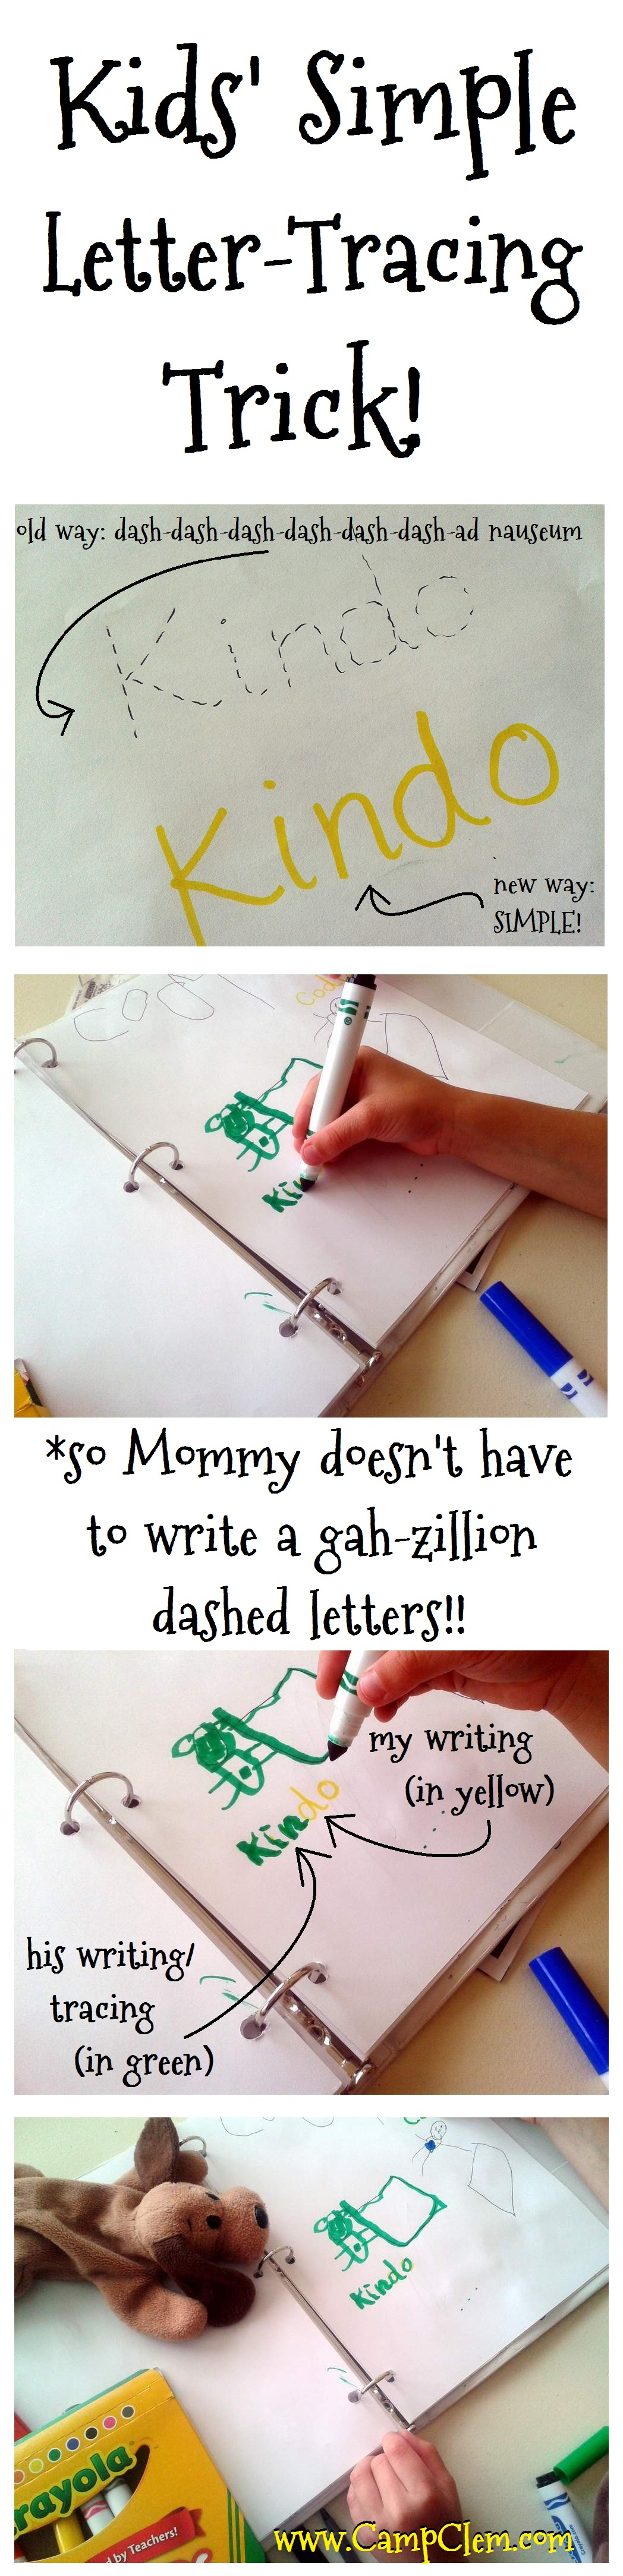 A Simple Trick For Kids Letter Tracing